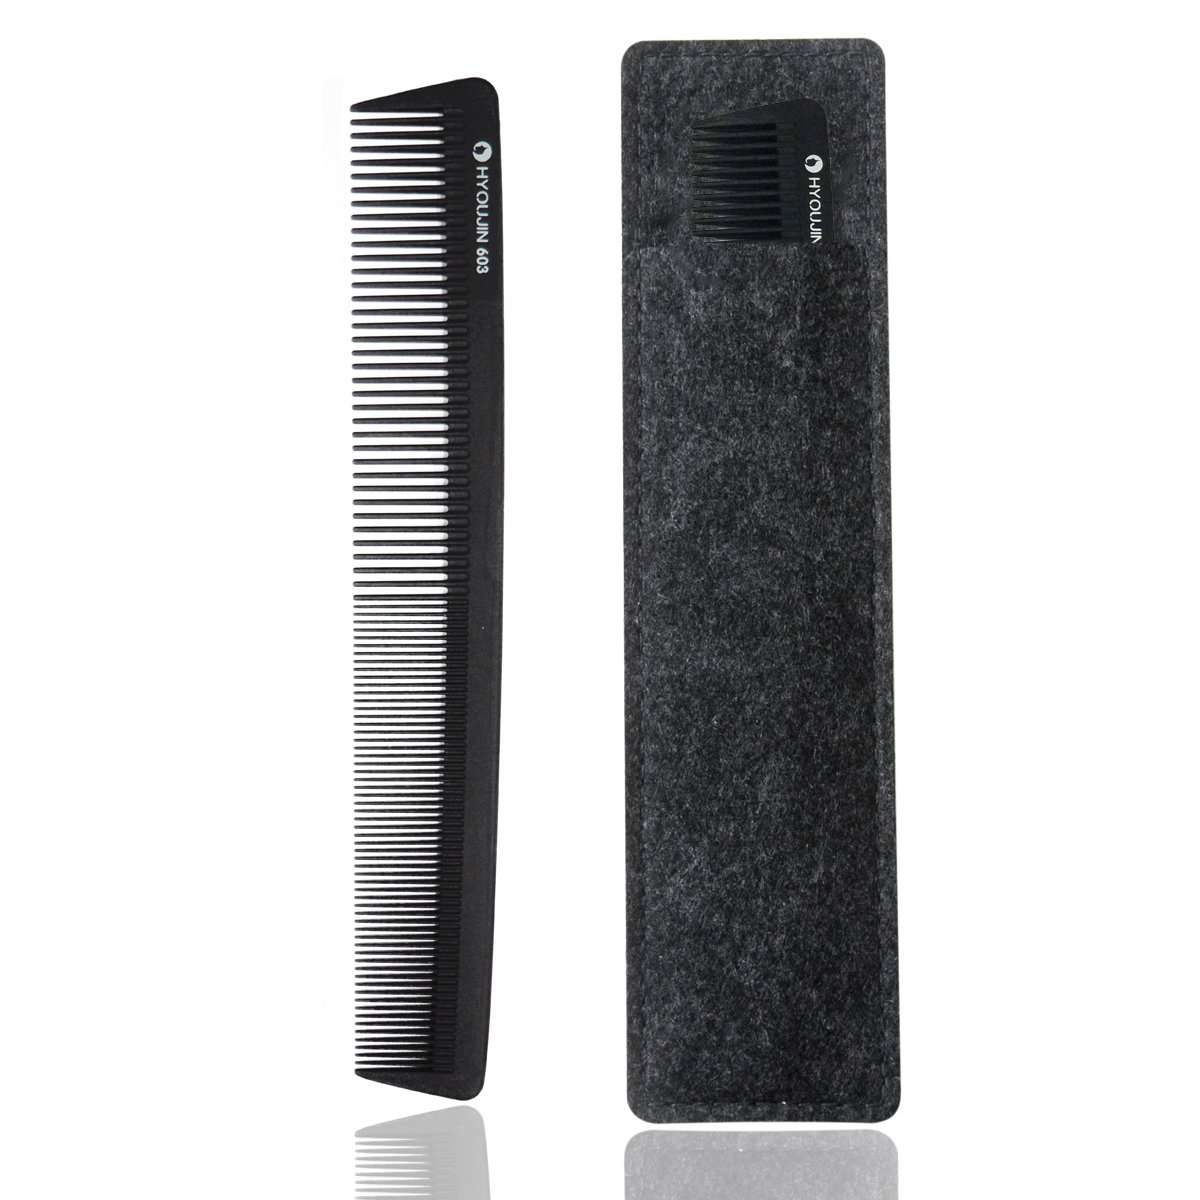 HYOUJIN 603 Classic Precision Cutting Comb, 7.5 Inch(19.5cm), 100% Anti static 230℃(450°) Heat Resistant, best for precise cut & dressing styling comb